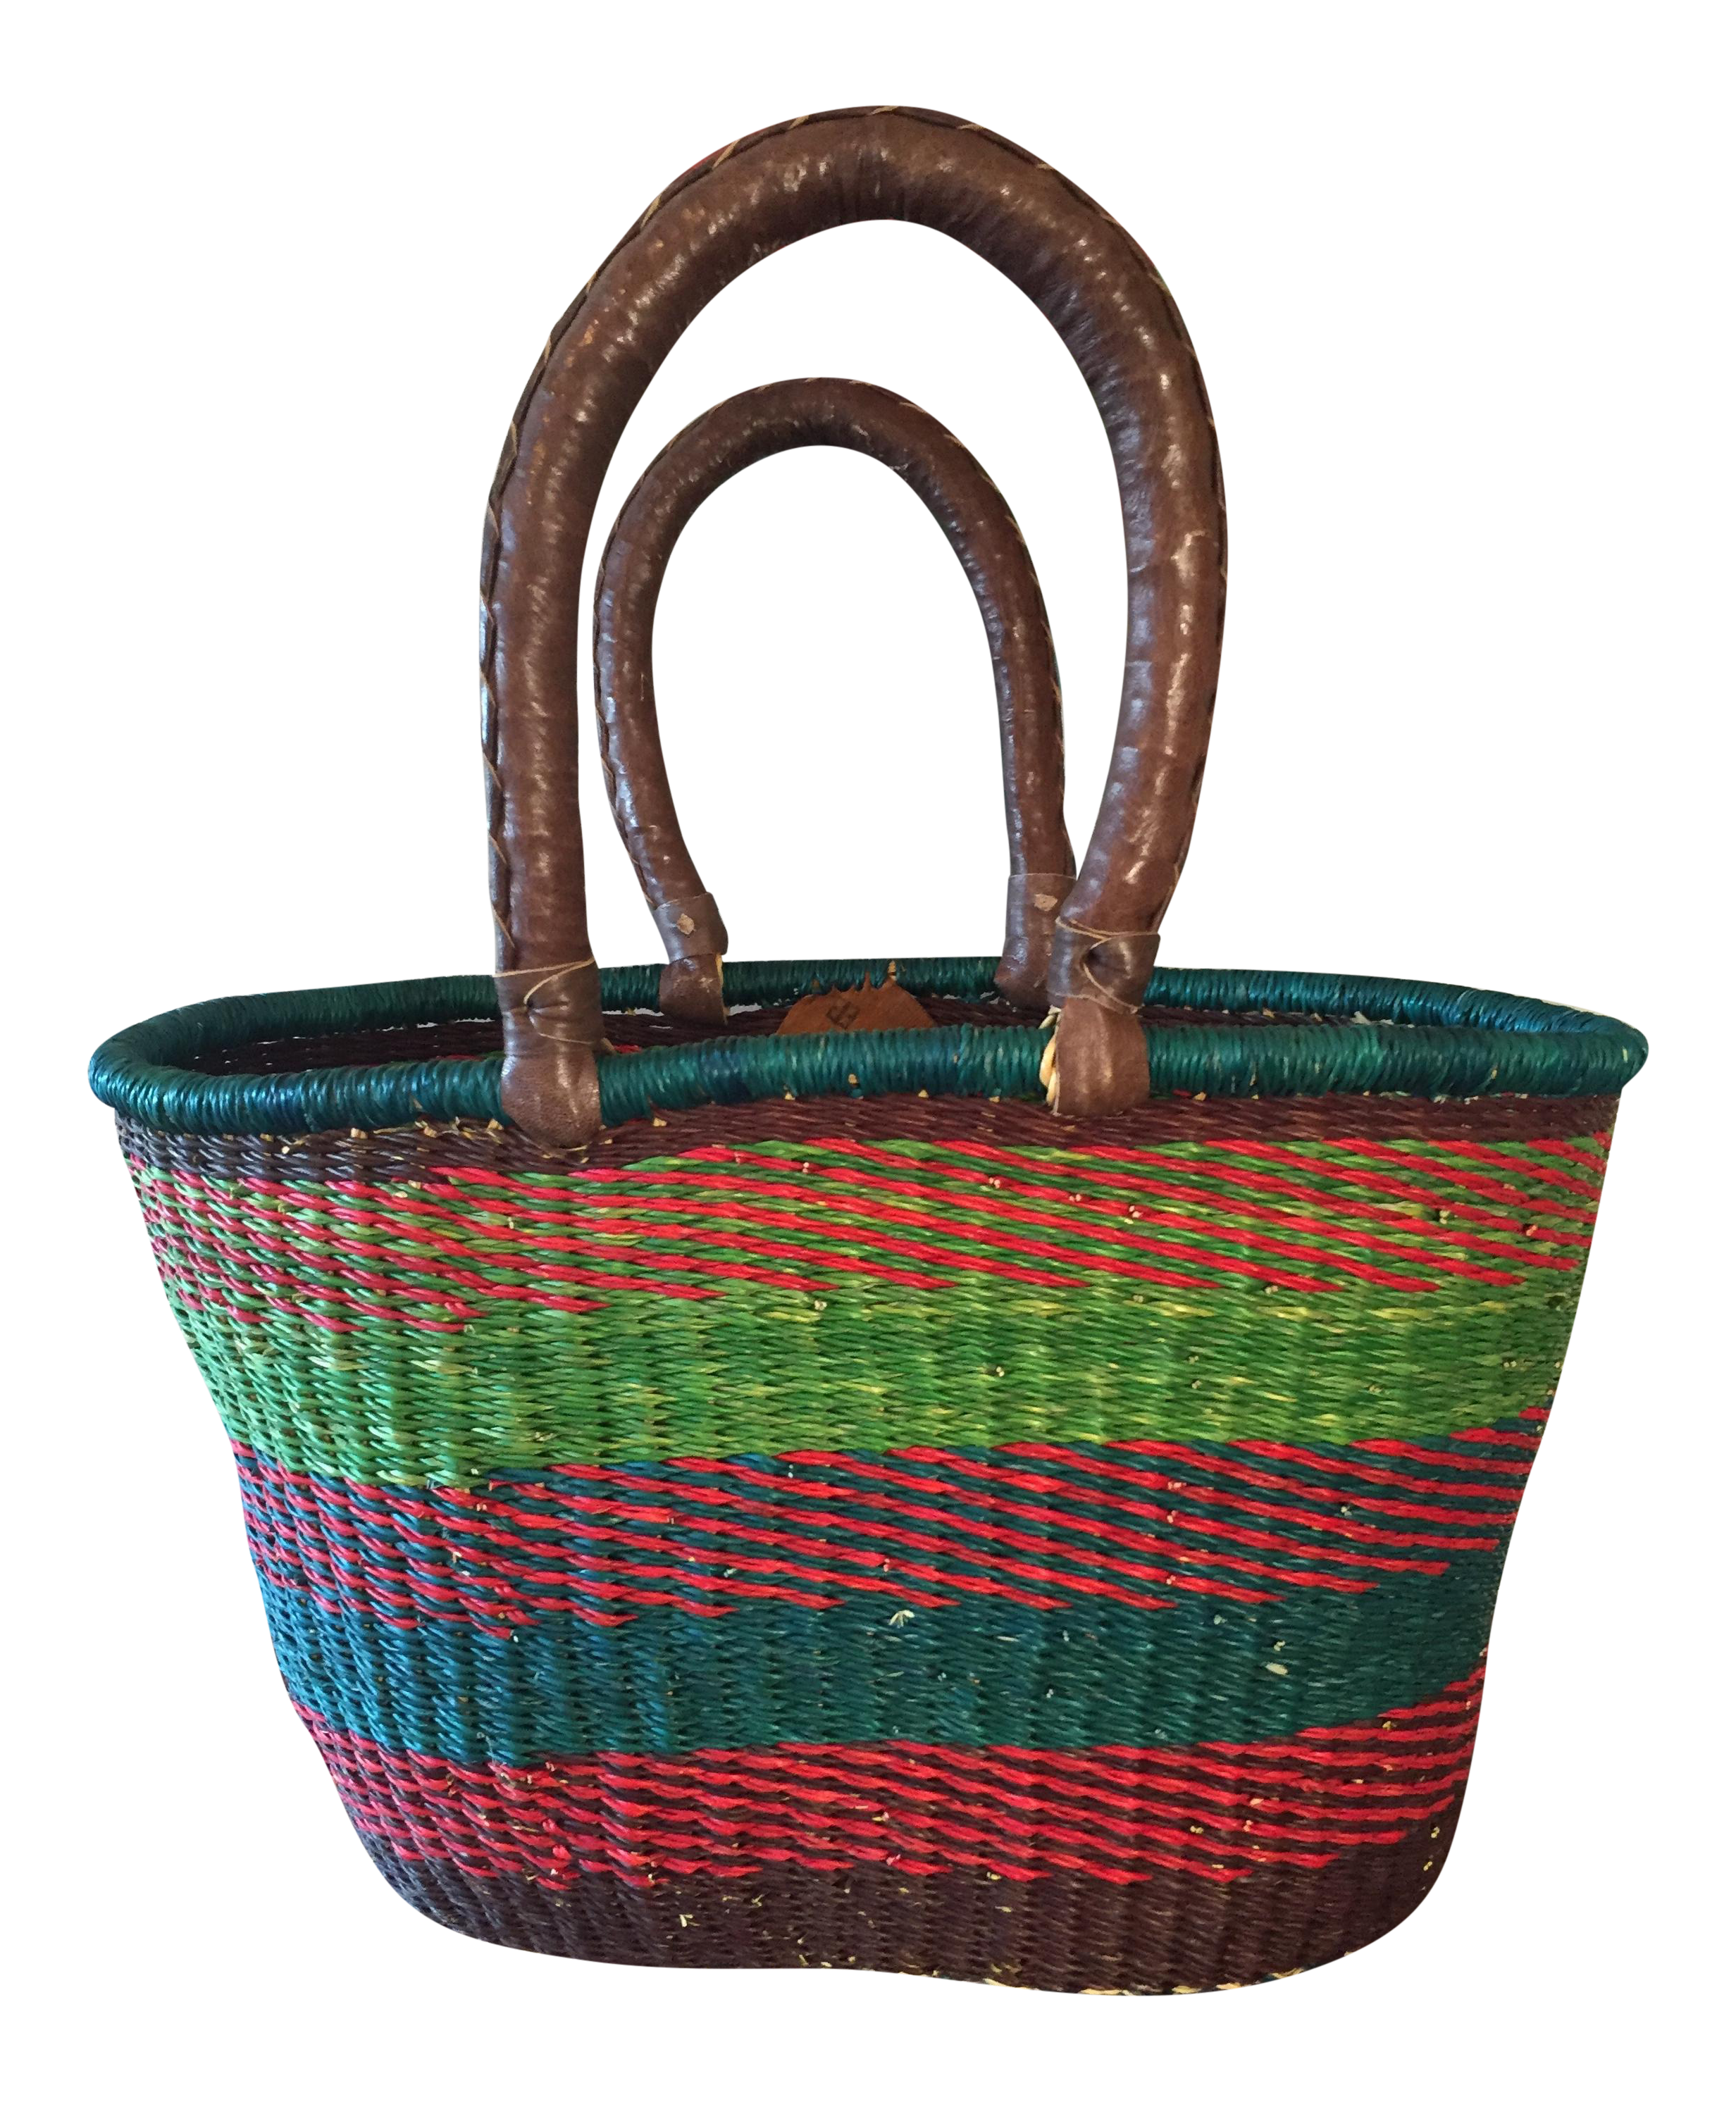 Handmade Baskets From Africa : African handmade turquoise ping basket chairish